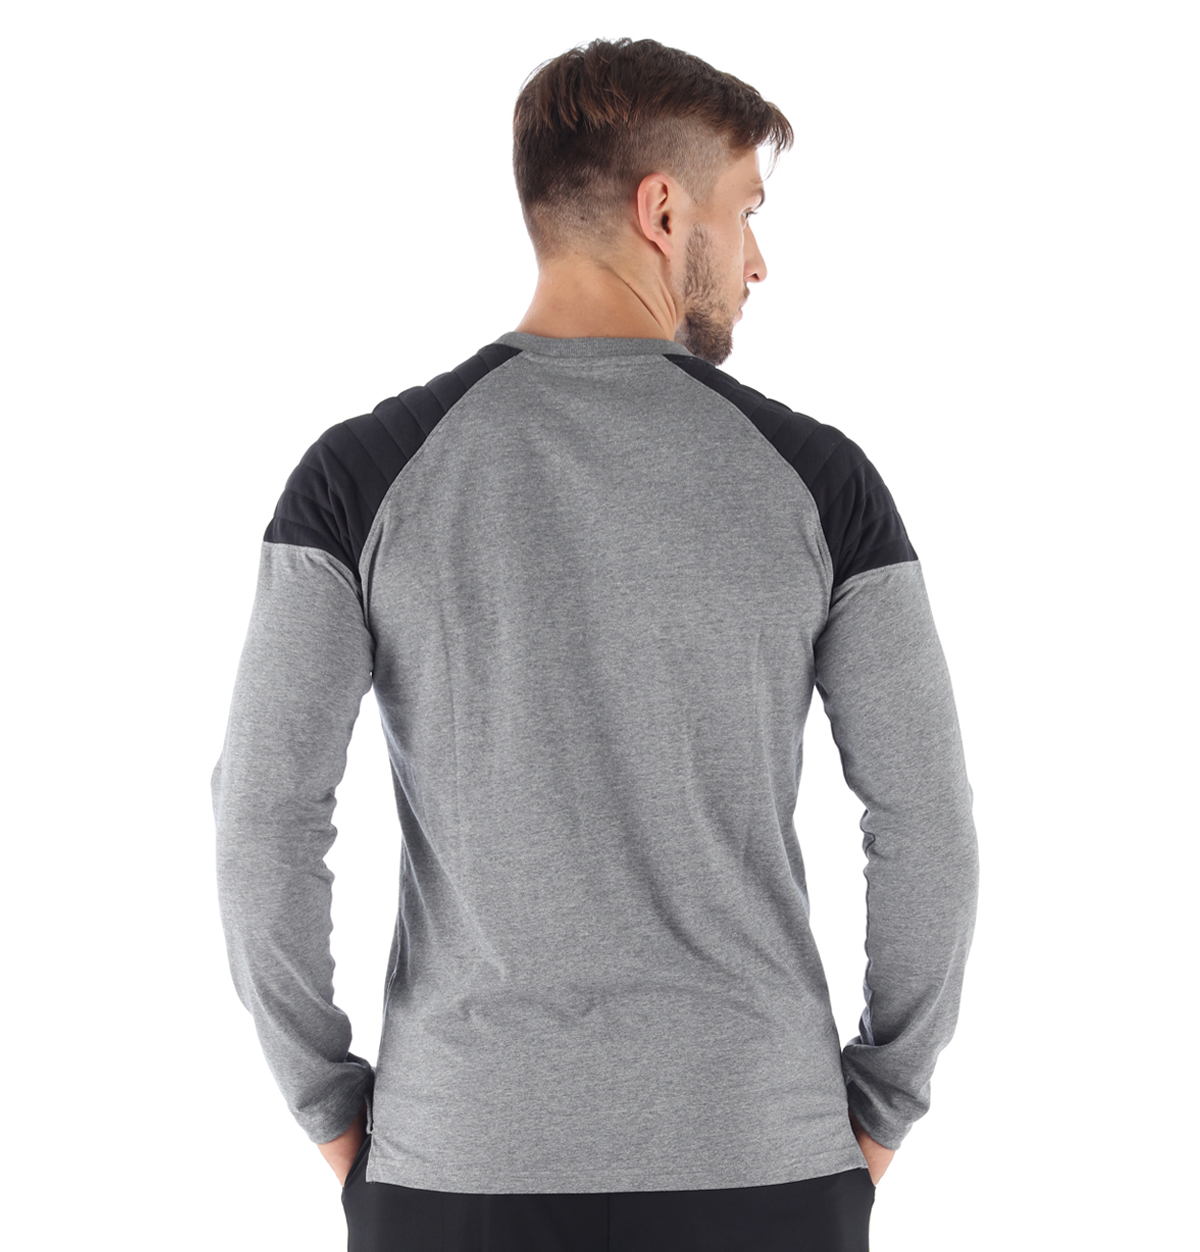 S3_MLRNT_02_GREY_BACK.jpg